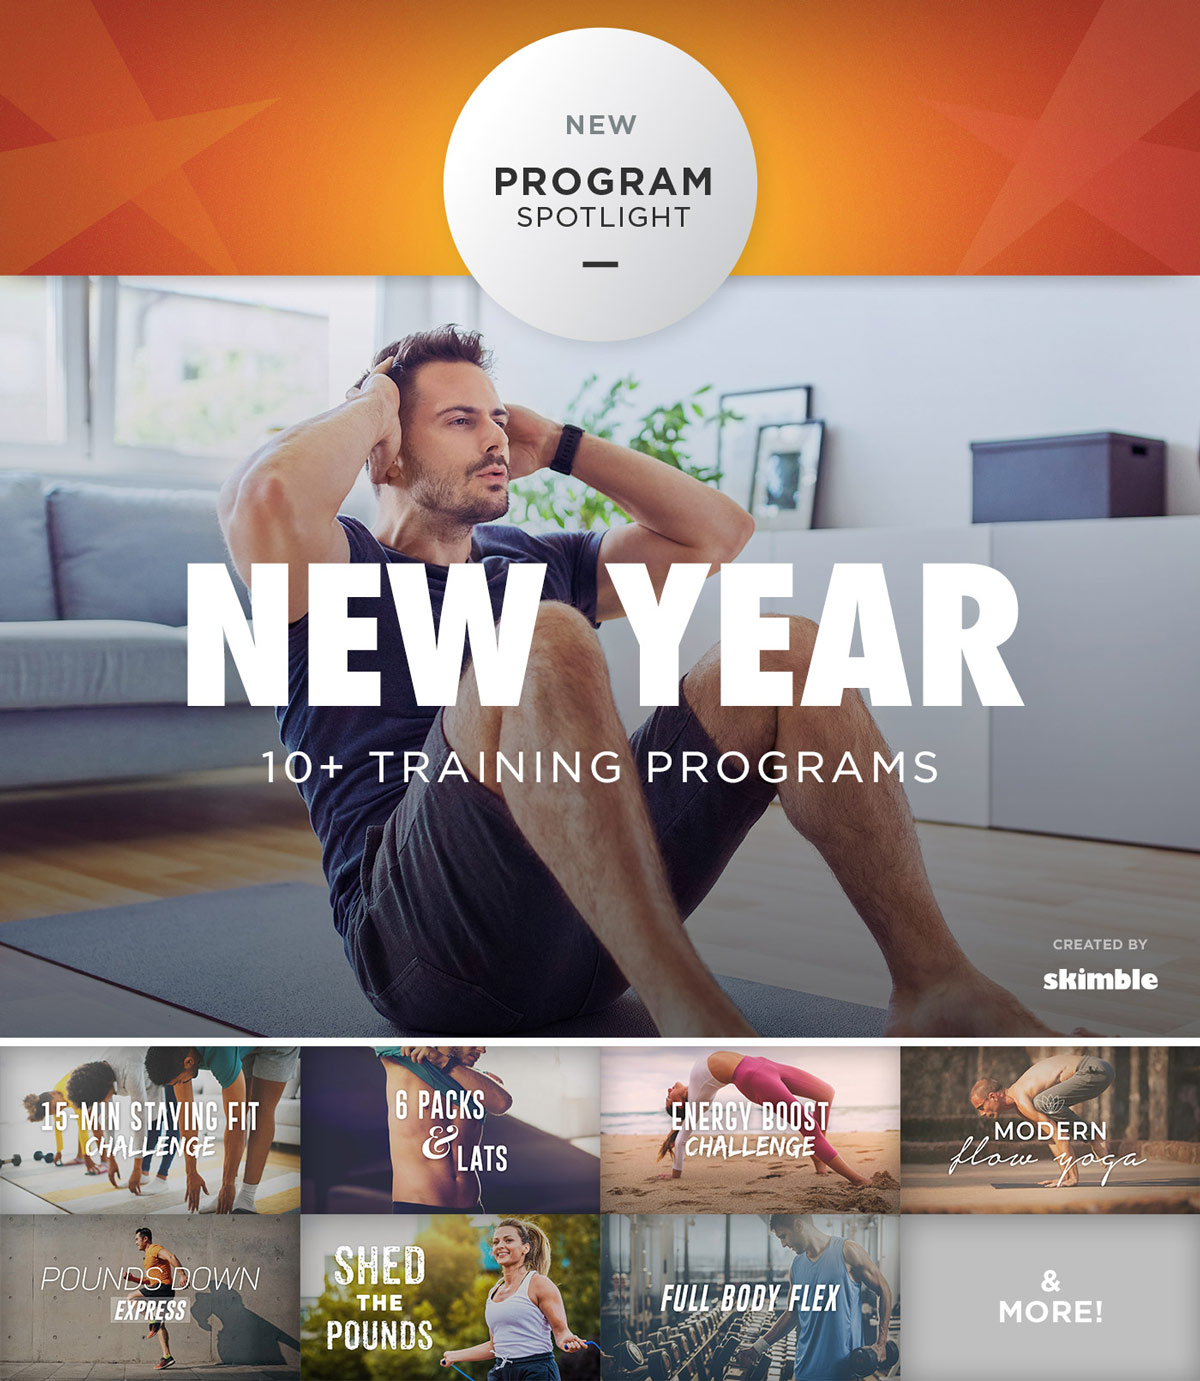 Workout Trainer app - 10+ New Training Programs for 2021